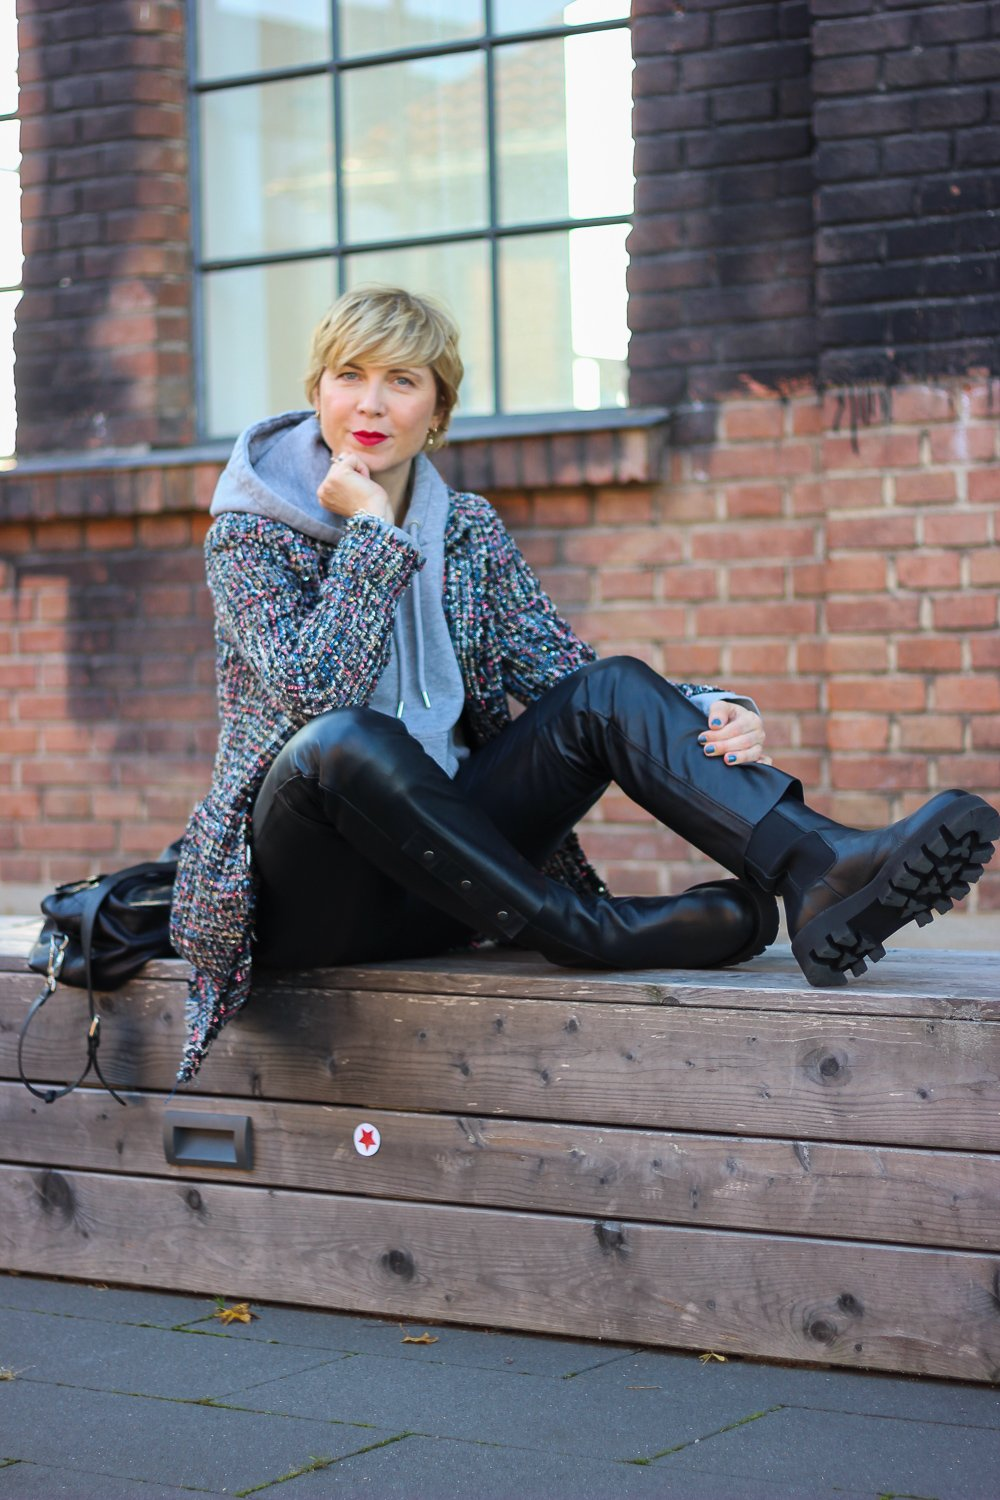 conny doll lifestyle: Chunky-Boots, Lederhose, Longblazer und Hoodie